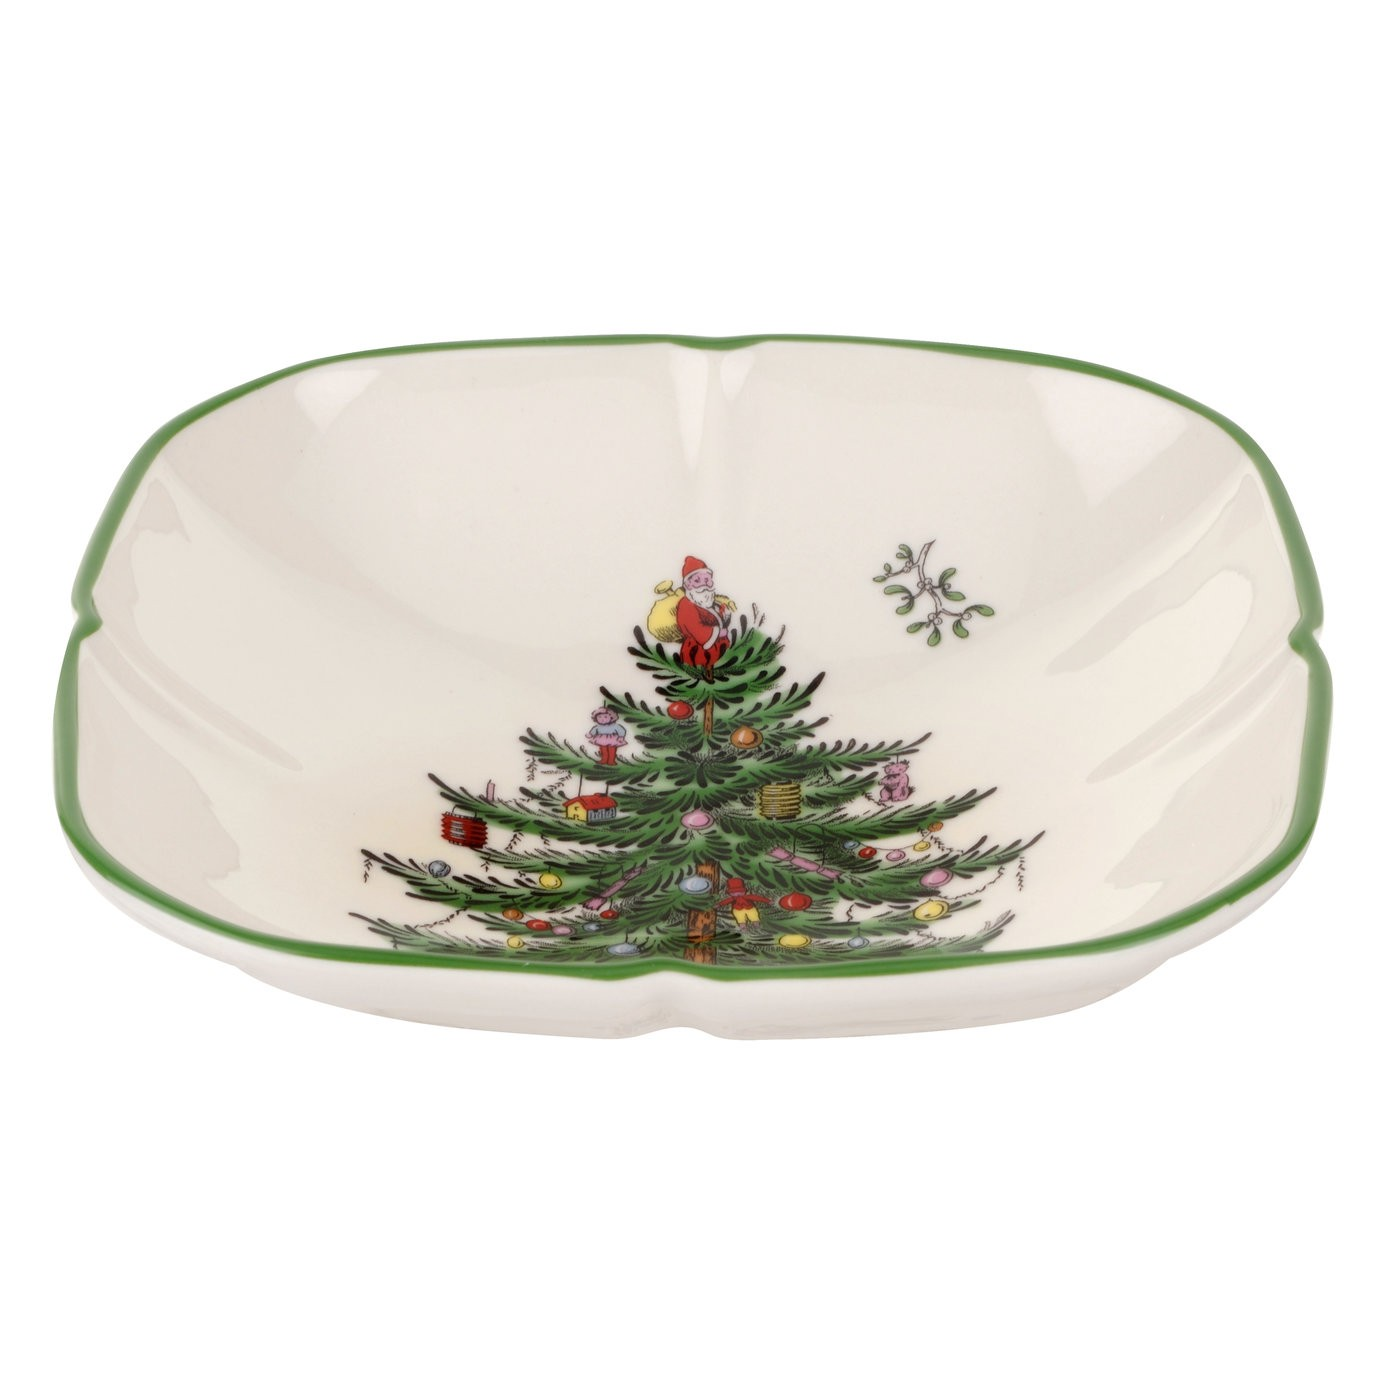 Spode Christmas Tree China Sale: Spode Christmas Tree Sculpted Square Dish $9.99, You Save